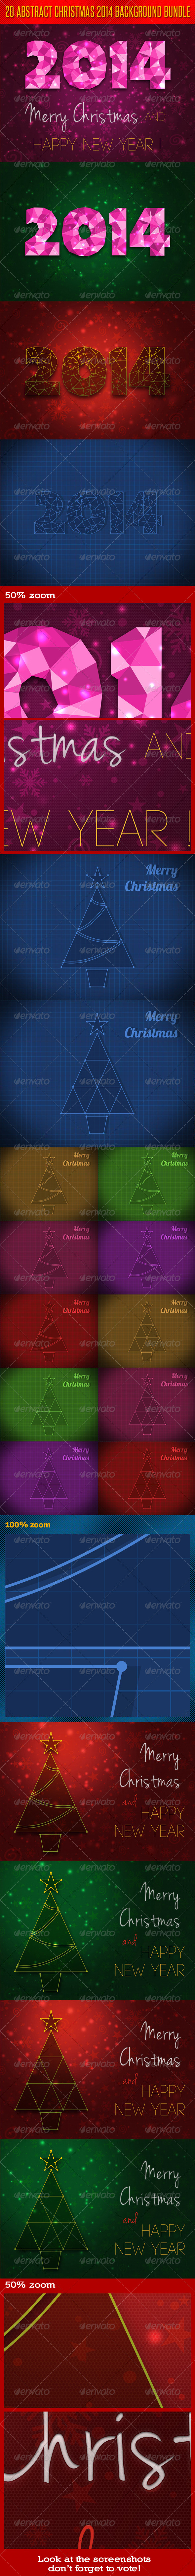 GraphicRiver 20 Abstract Christmas 2014 Background Bundle 6376783